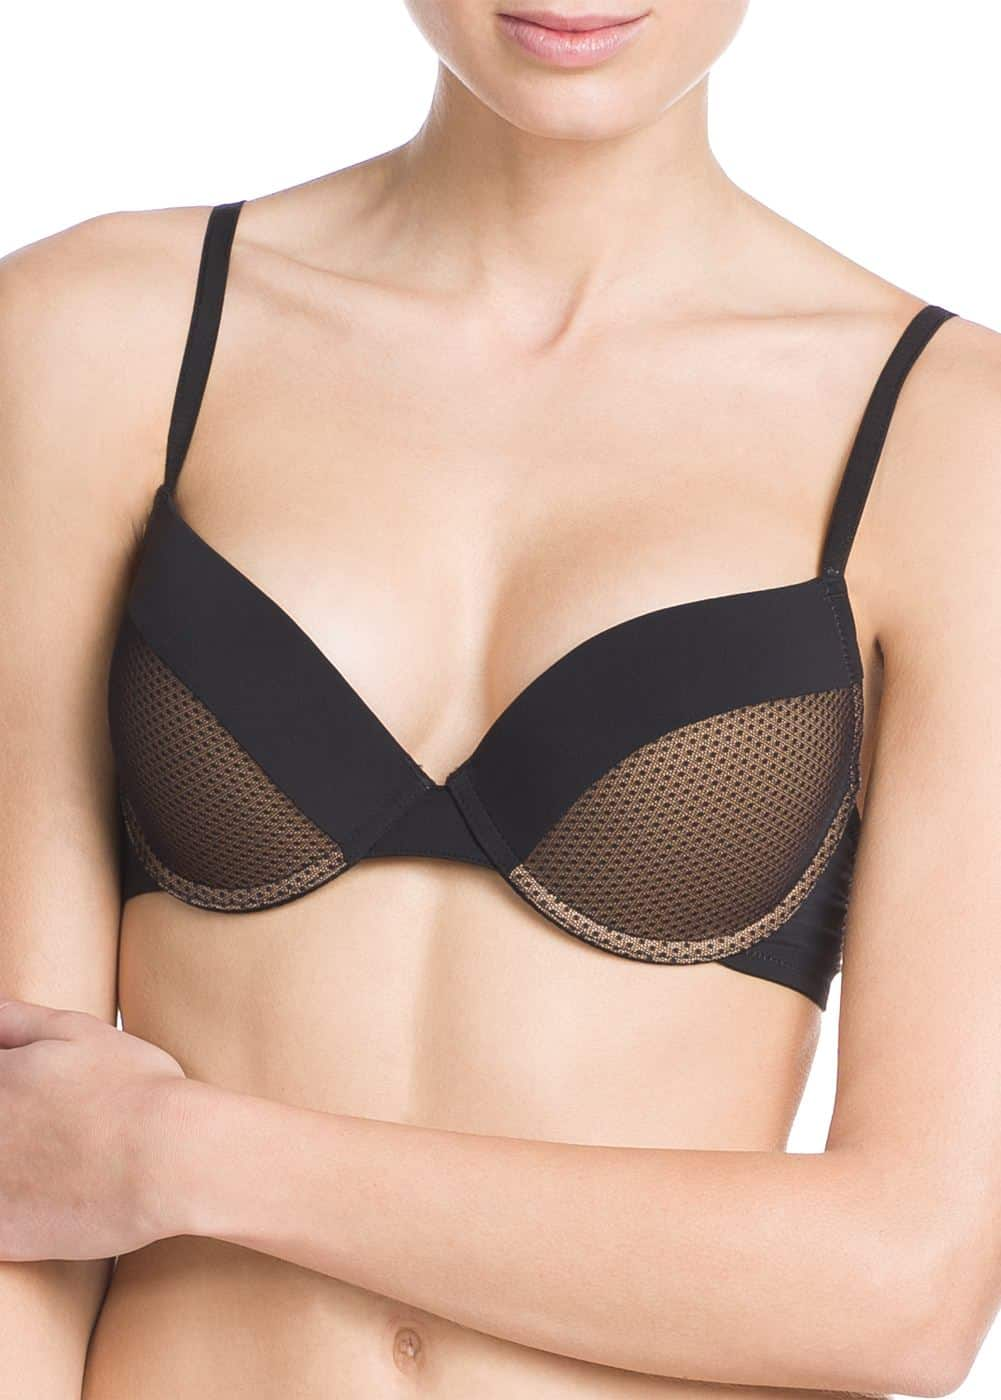 Plumeti push-up bra